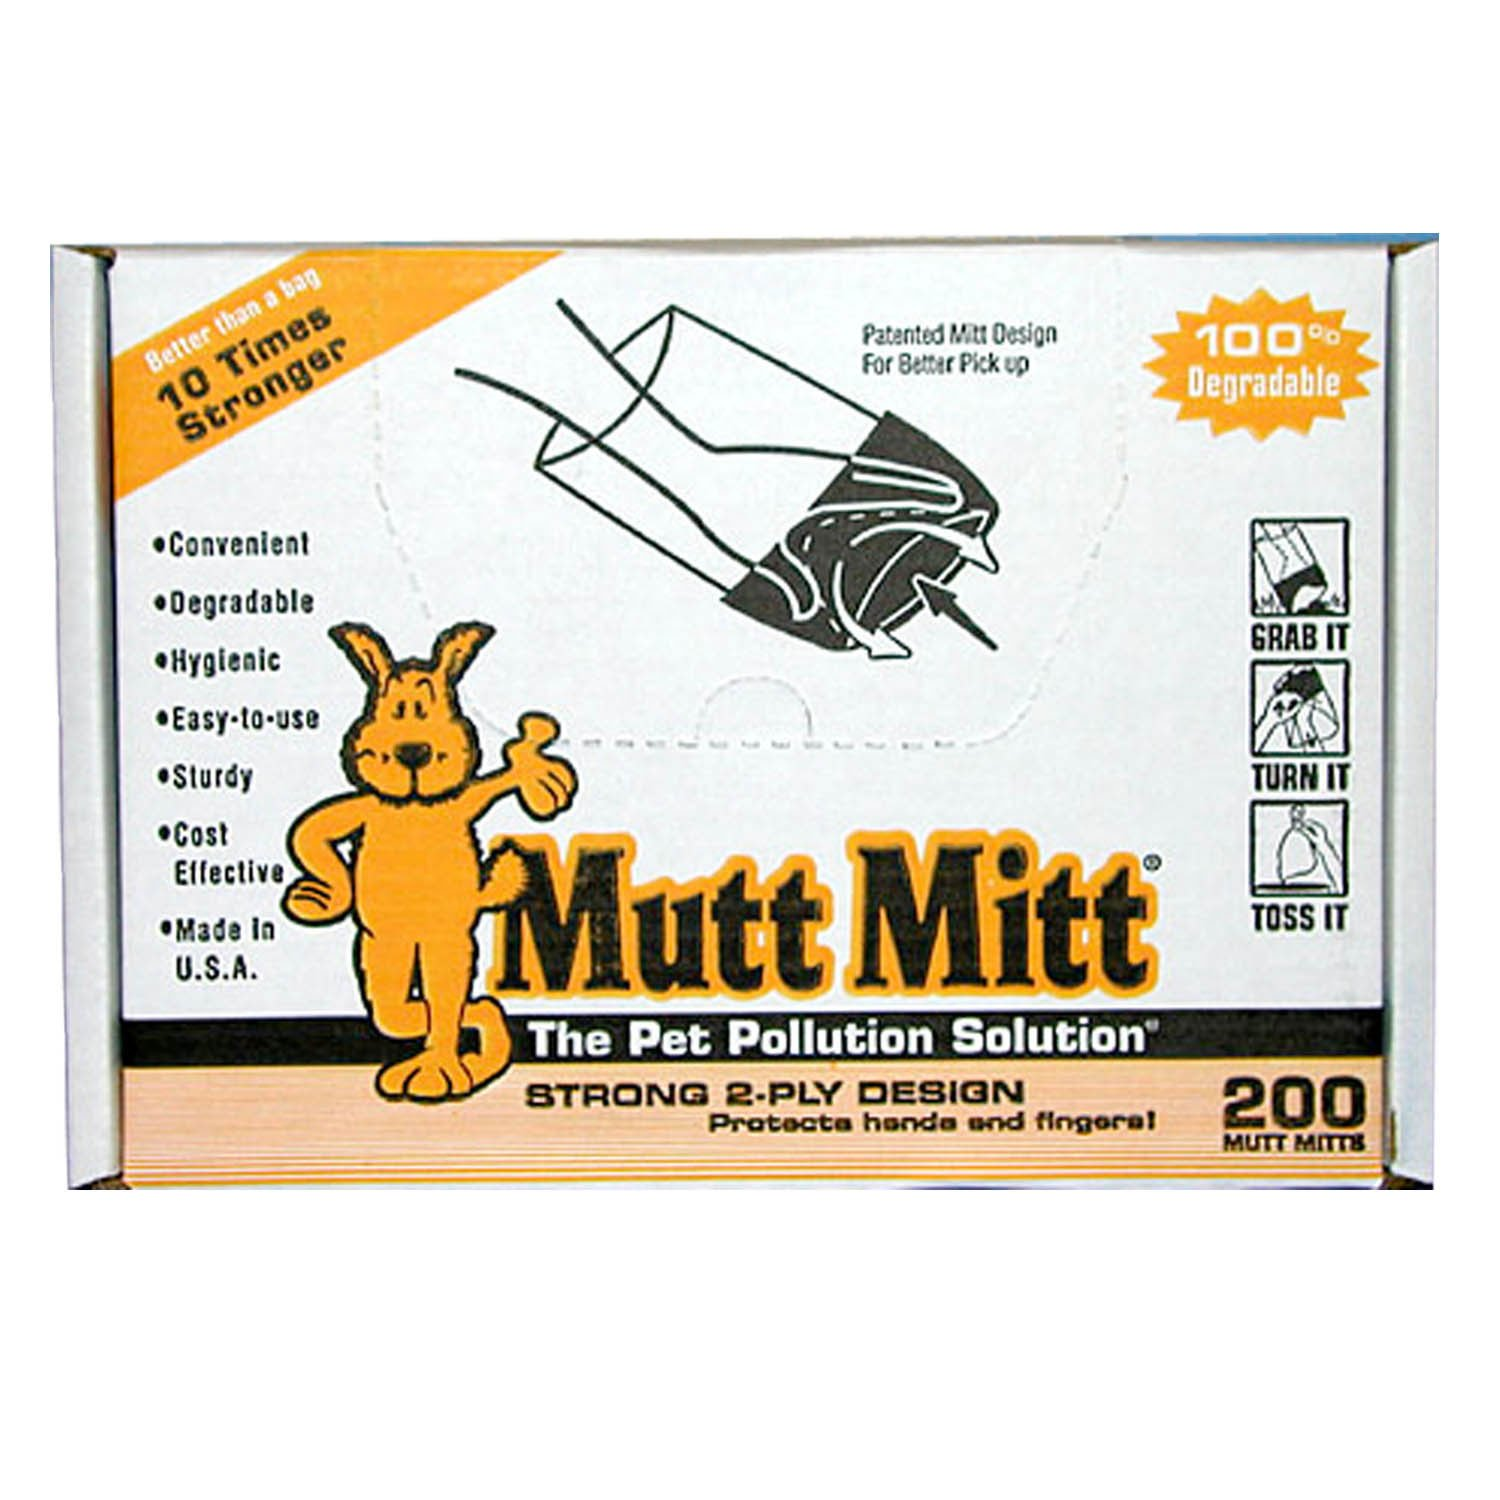 Mutt Mitt Disposable Waste Pick Up Bags